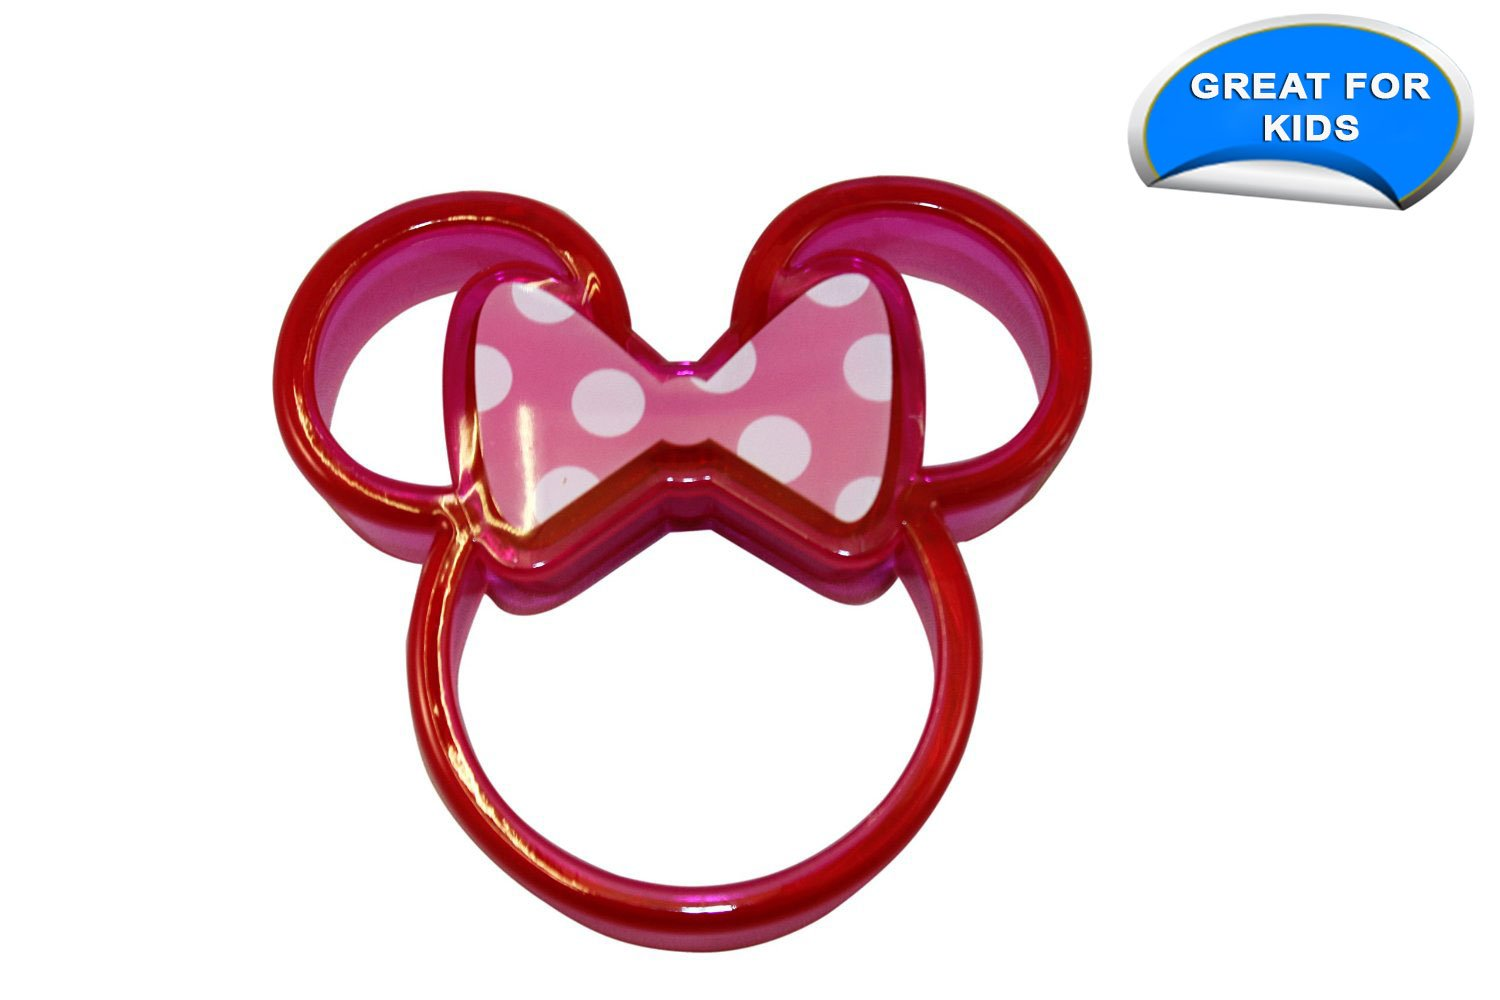 Amazon.com: Disney Minnie Mouse Sandwich Crust Cutter, Pack of 3 ...